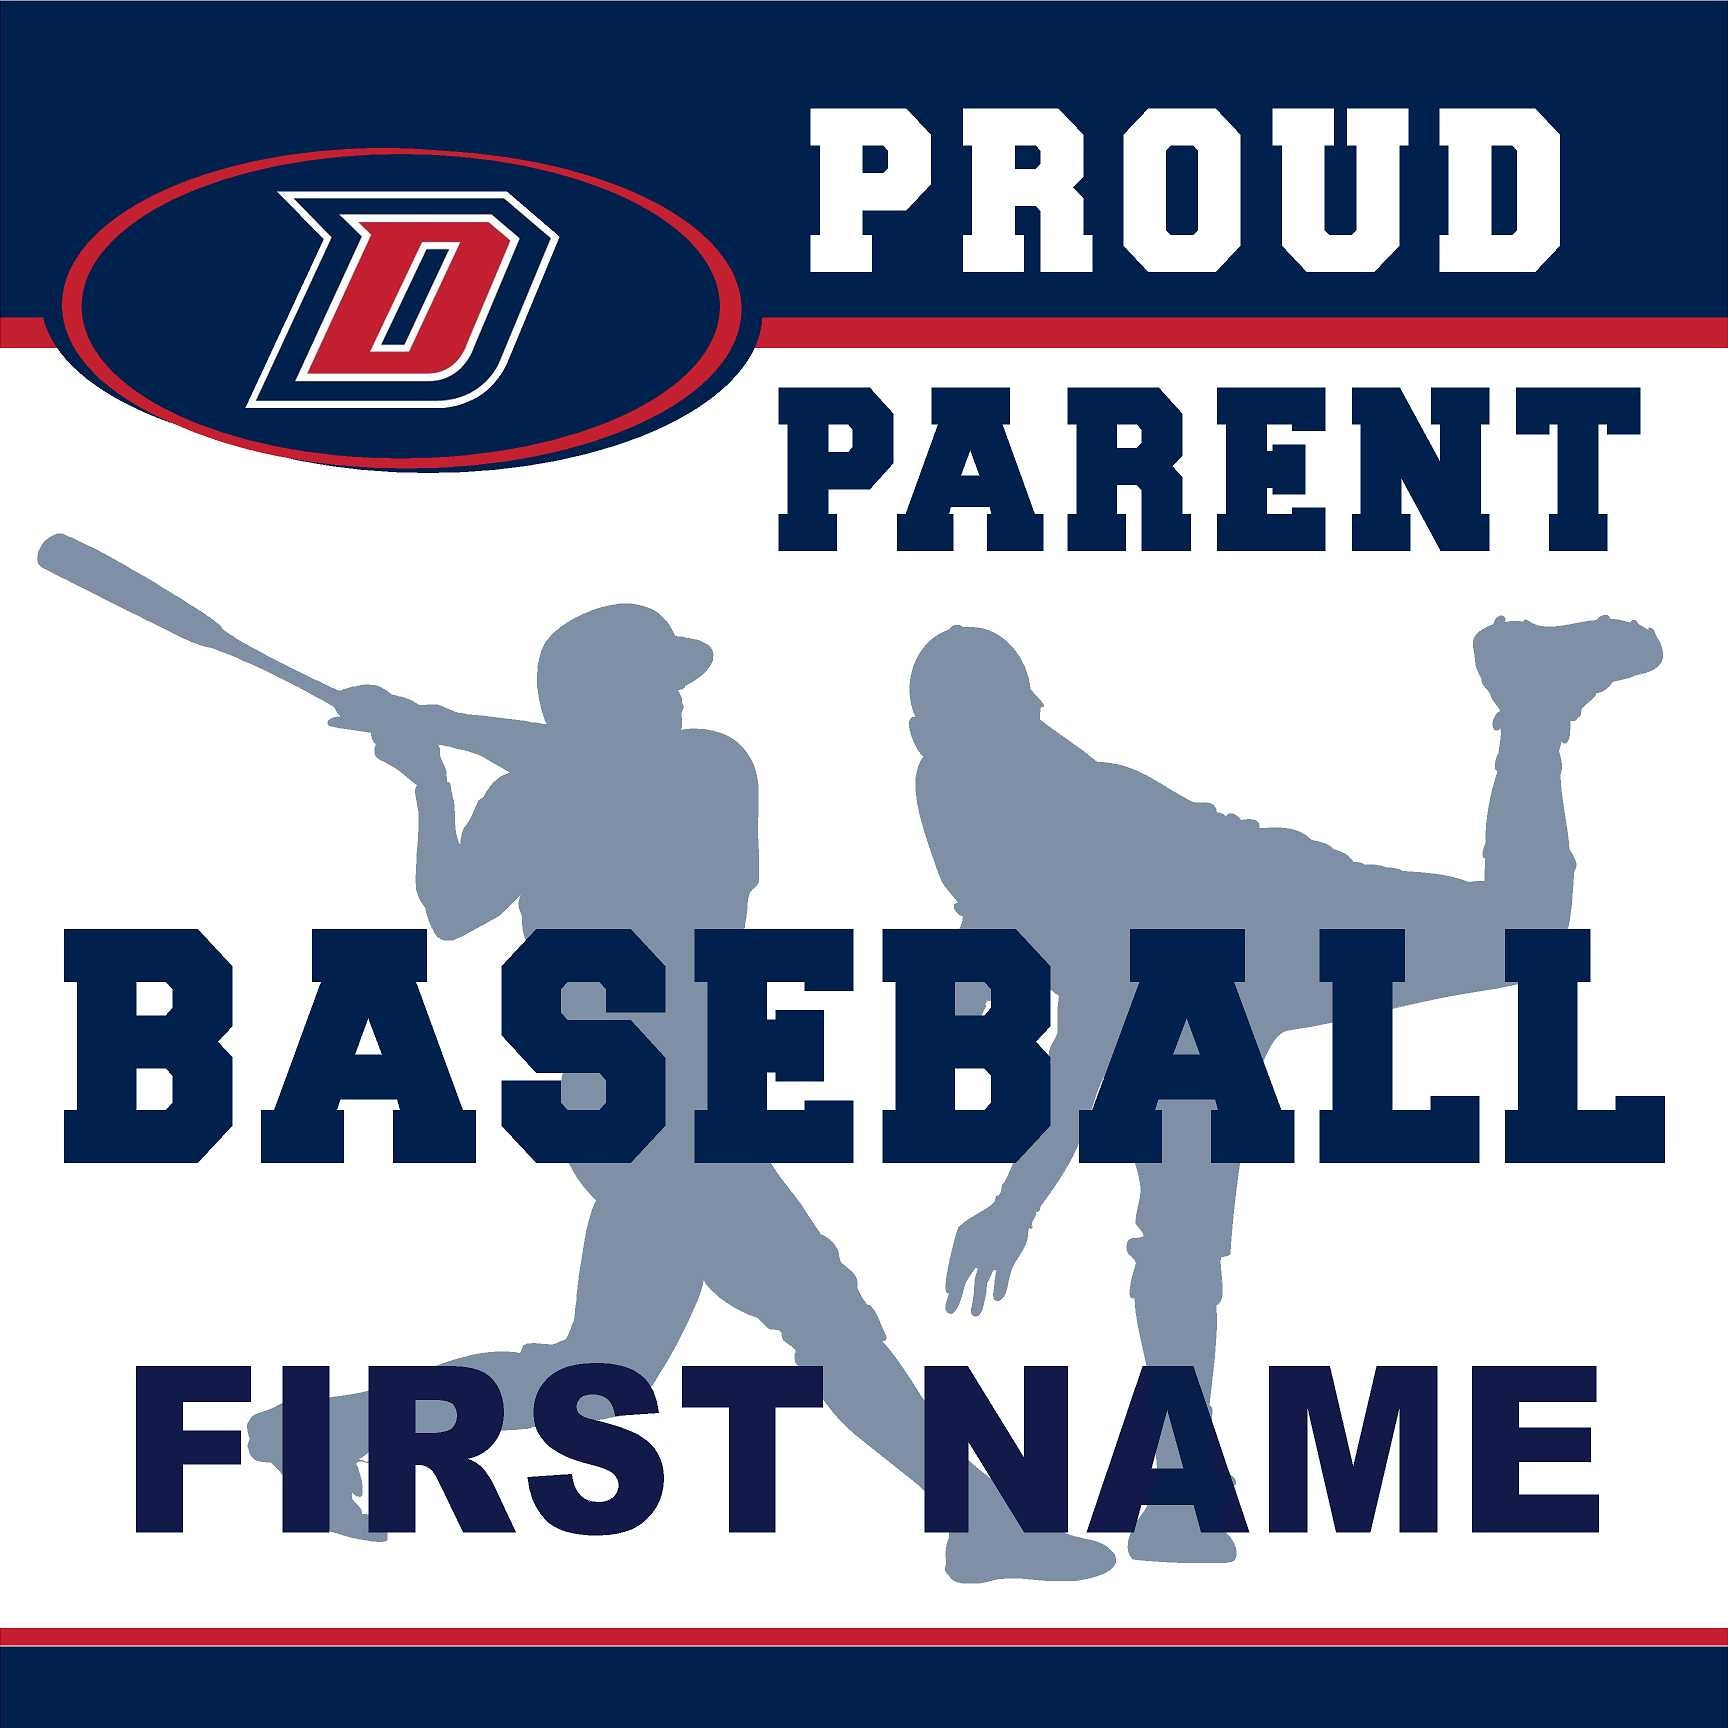 Dublin High School Baseball (Parent) 24x24 Yard Sign (includes installation in your yard)